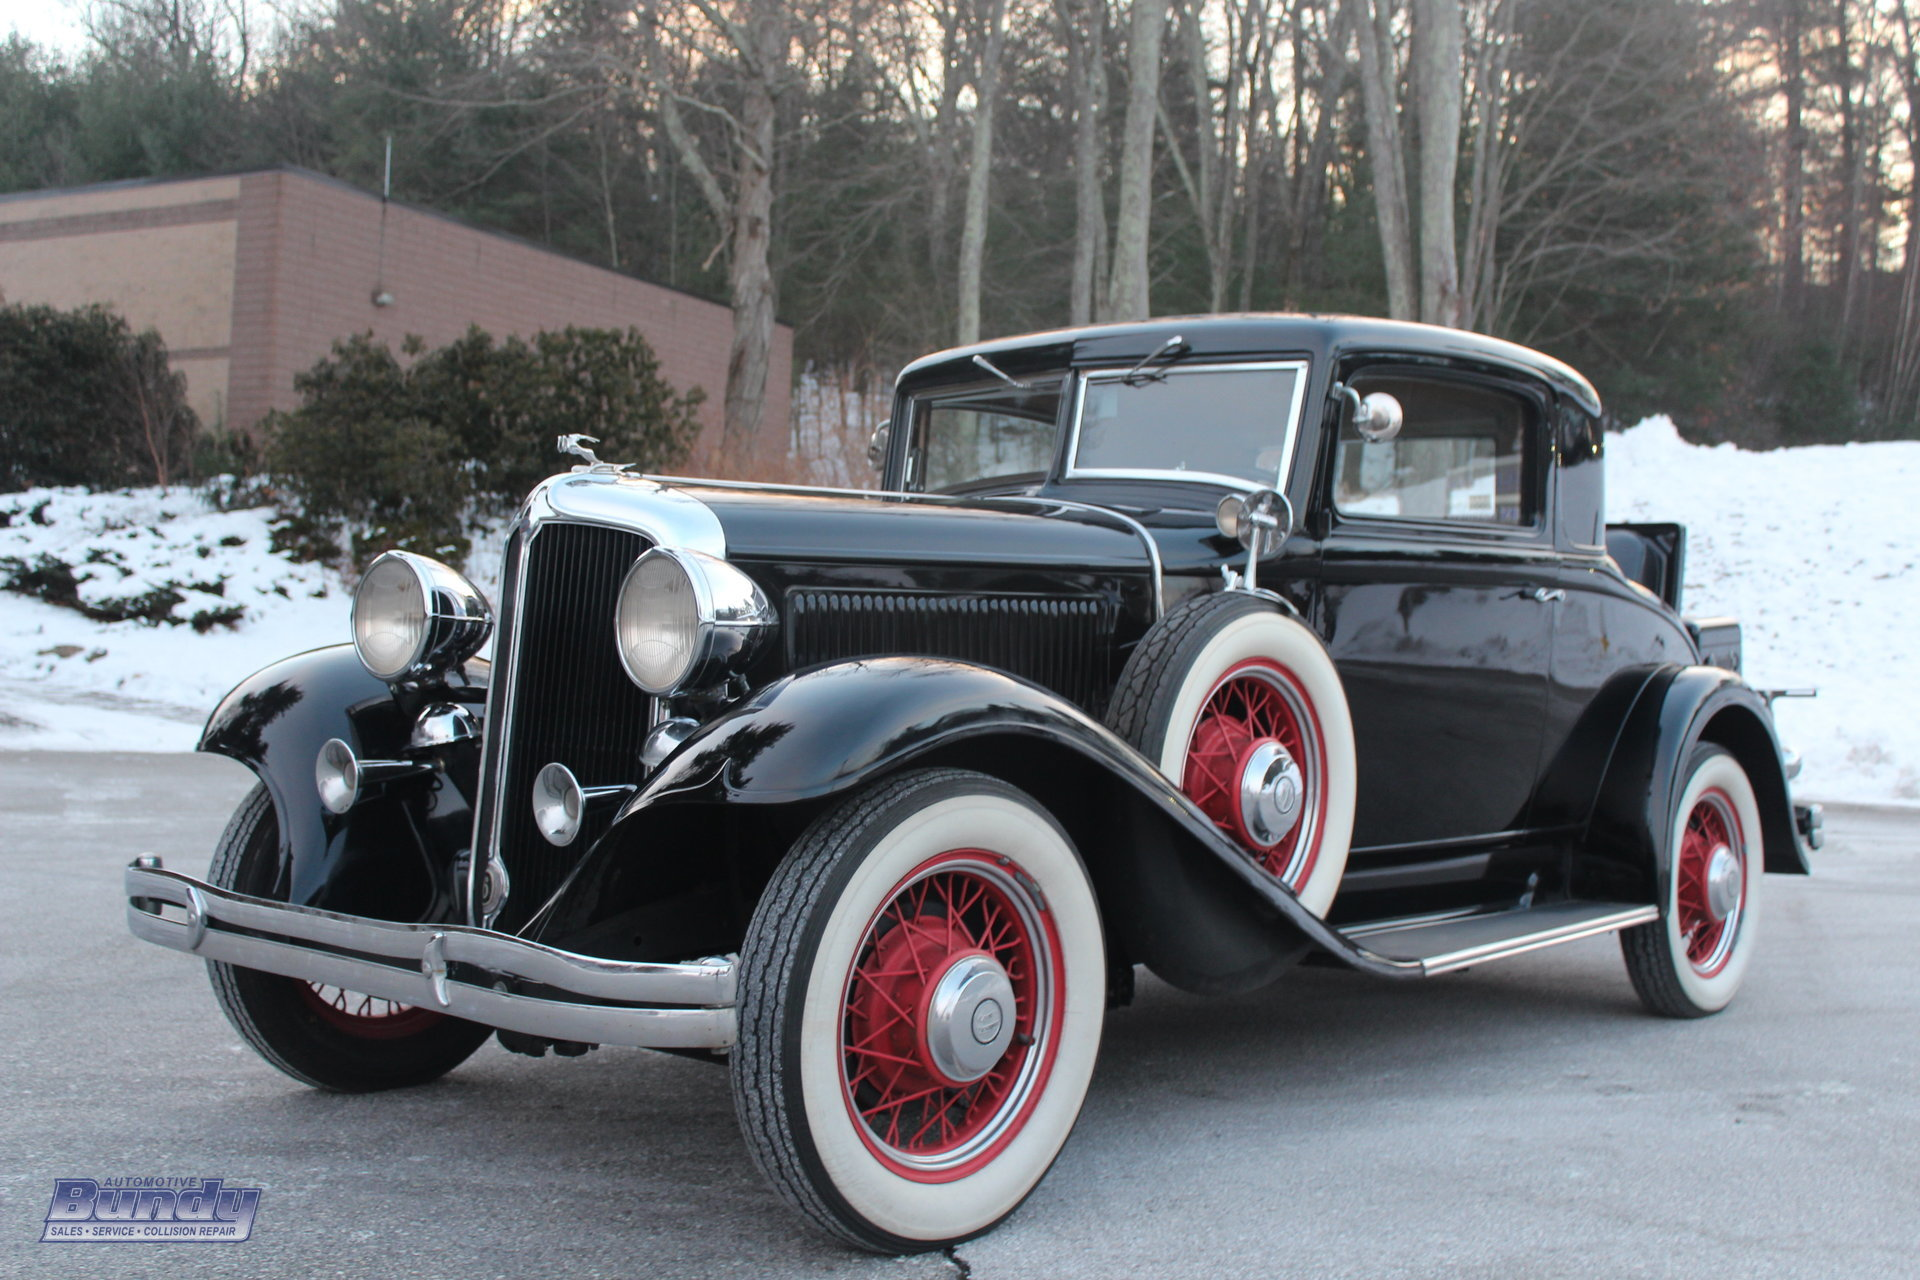 14530cba2776 hd 1932 chrysler series six ci rumble seat coupe